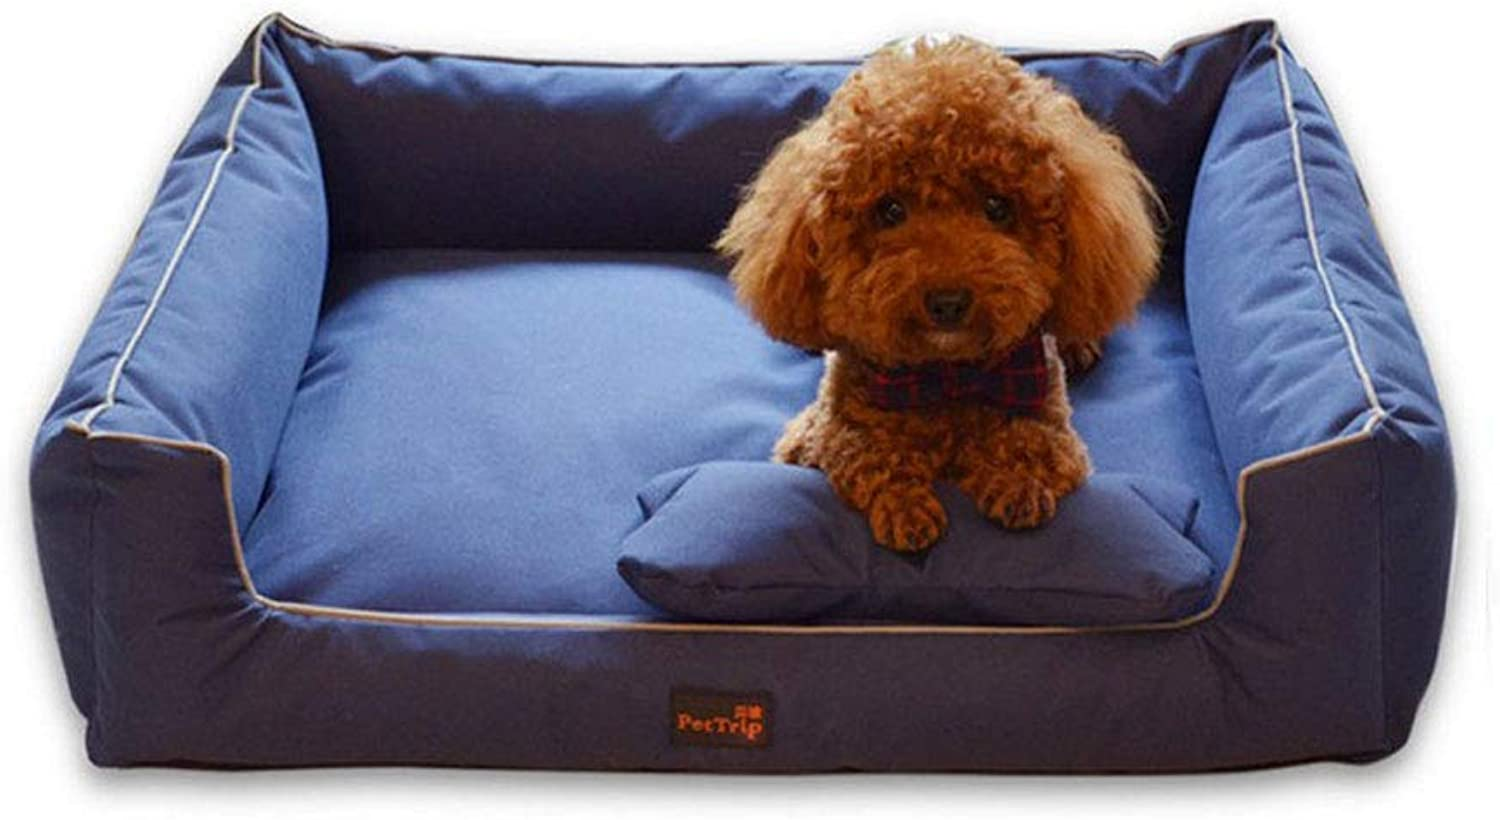 JM Pet Sofa Bed  Dog, Cat Or Puppy Memory Foam Mattress Comfortable Couch For Pets With Removable Washable Cover (color   C, Size   Xl)